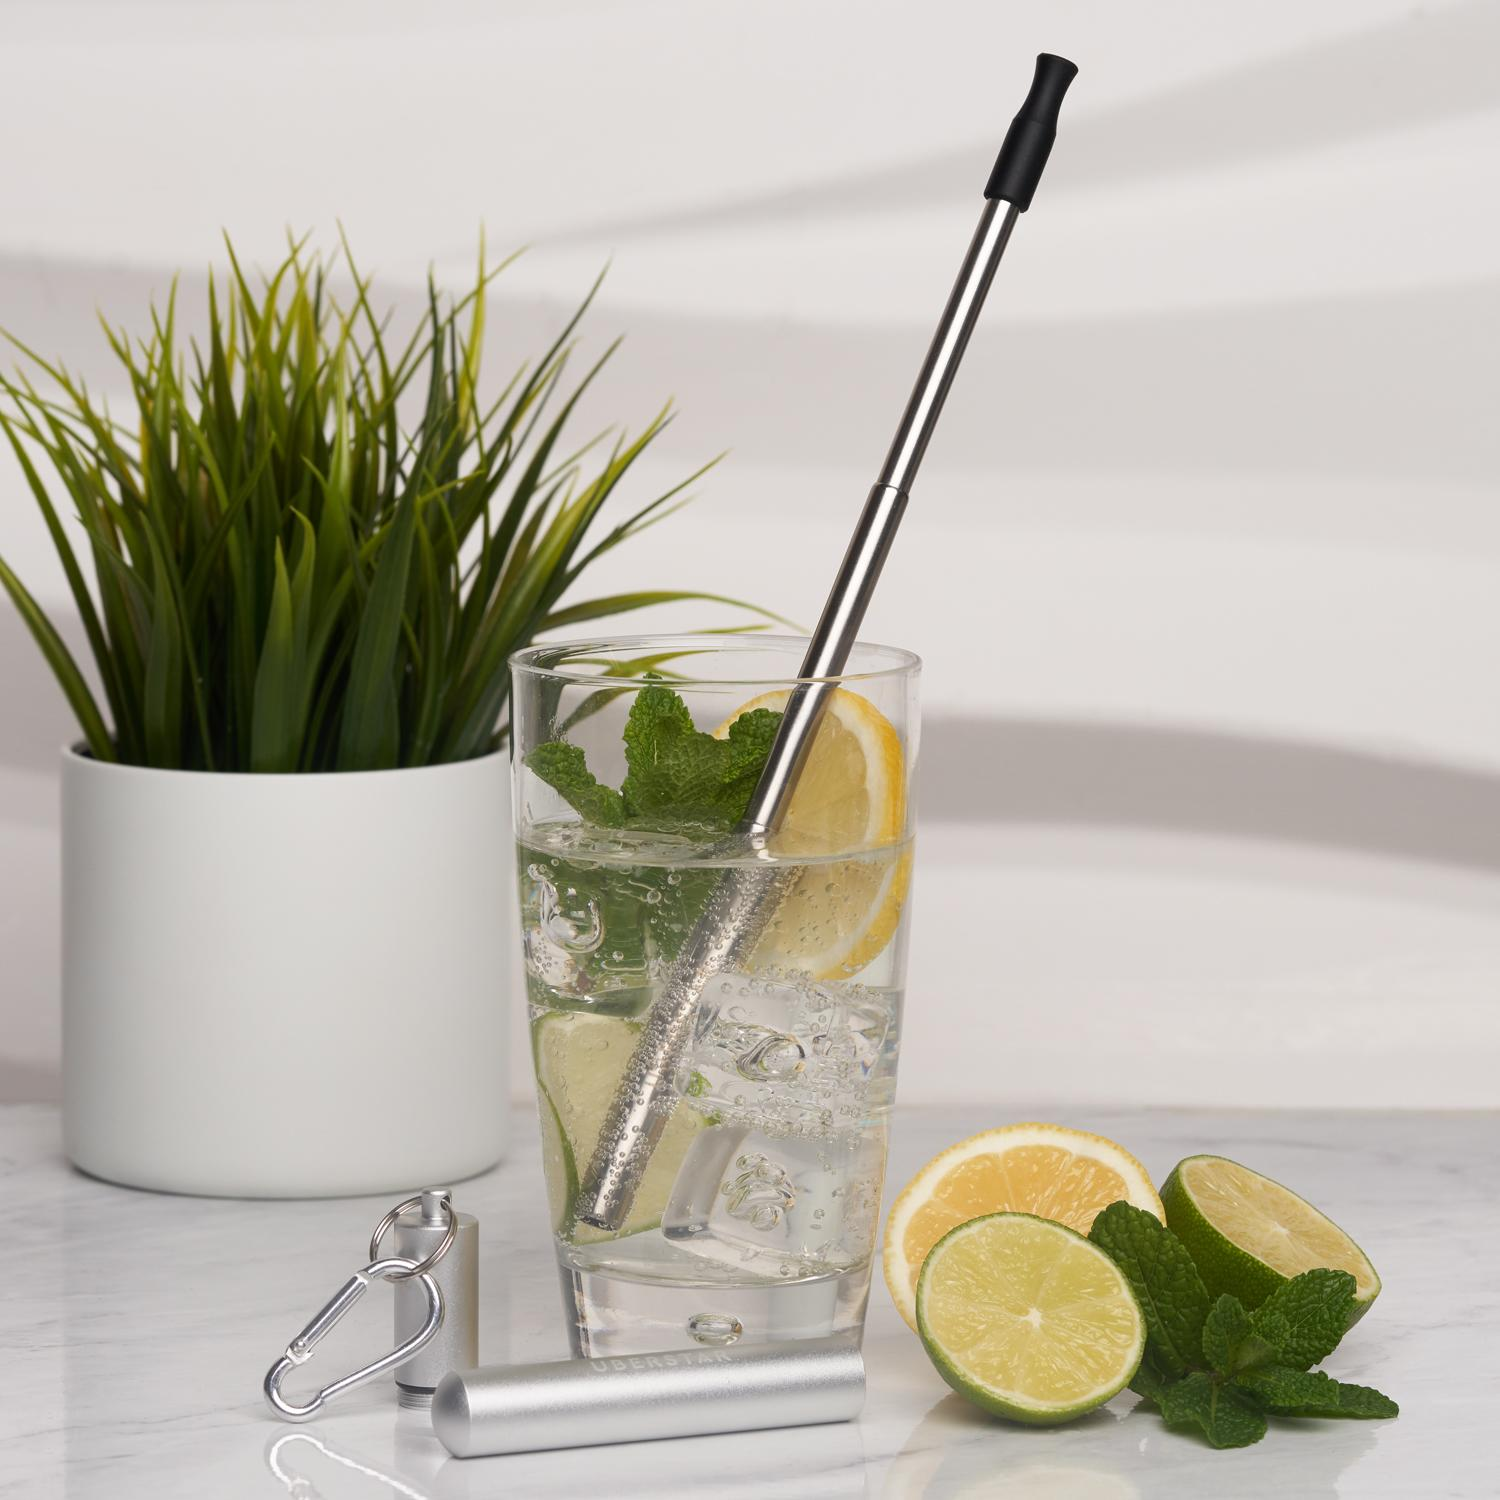 Uberstar Collapsible Travel Stainless Steel Straw - Silver